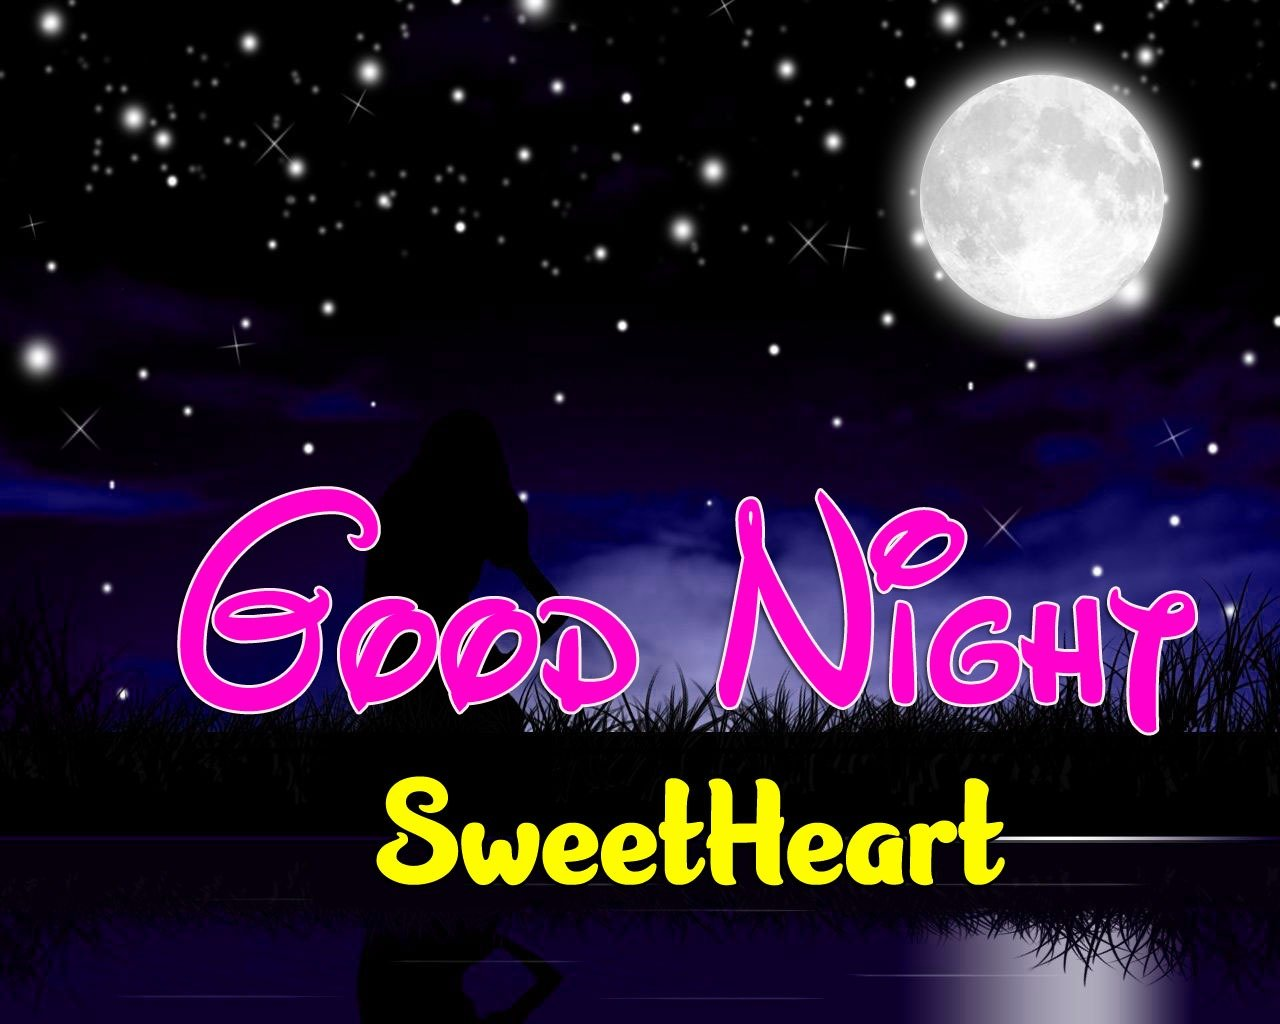 Free Girlfriend Good Night Wishes Wallpaper For Sweet Heart